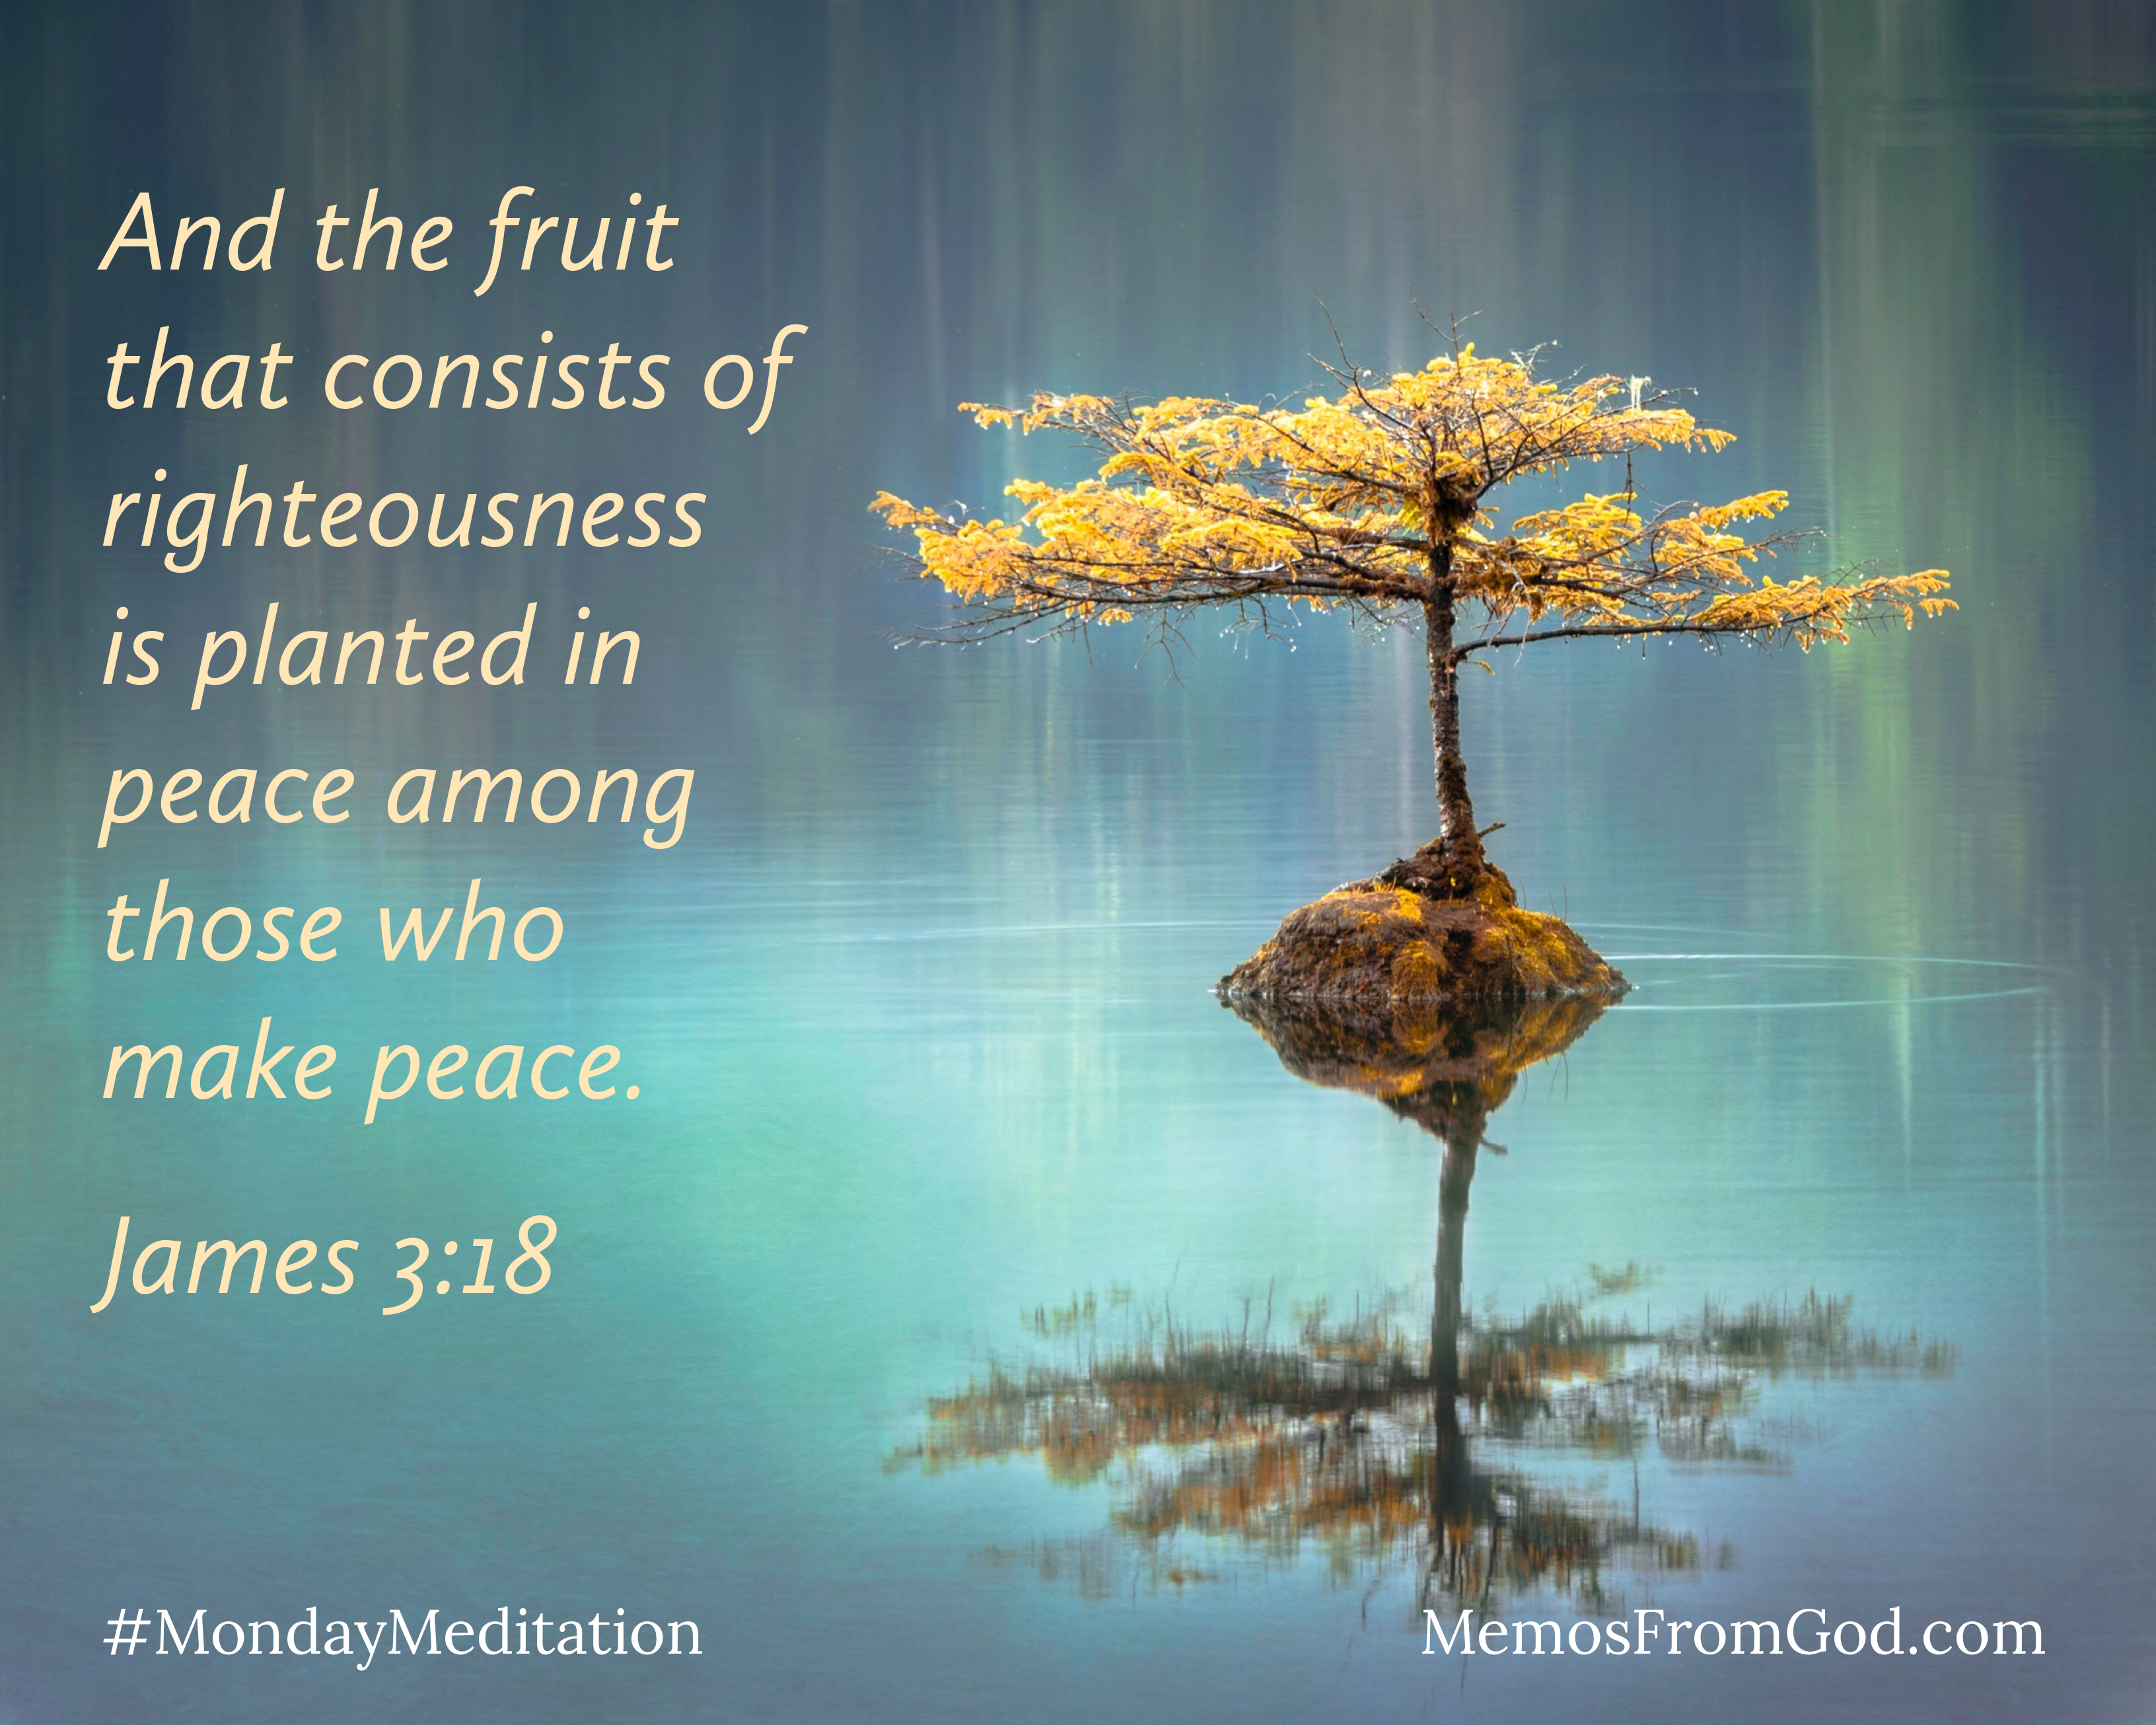 A small tree with golden leaves grows out of a rock in the middle of a calm, turquoise lake. Caption: And the fruit that consists of righteousness is planted in peace among those who make peace. James 3:18